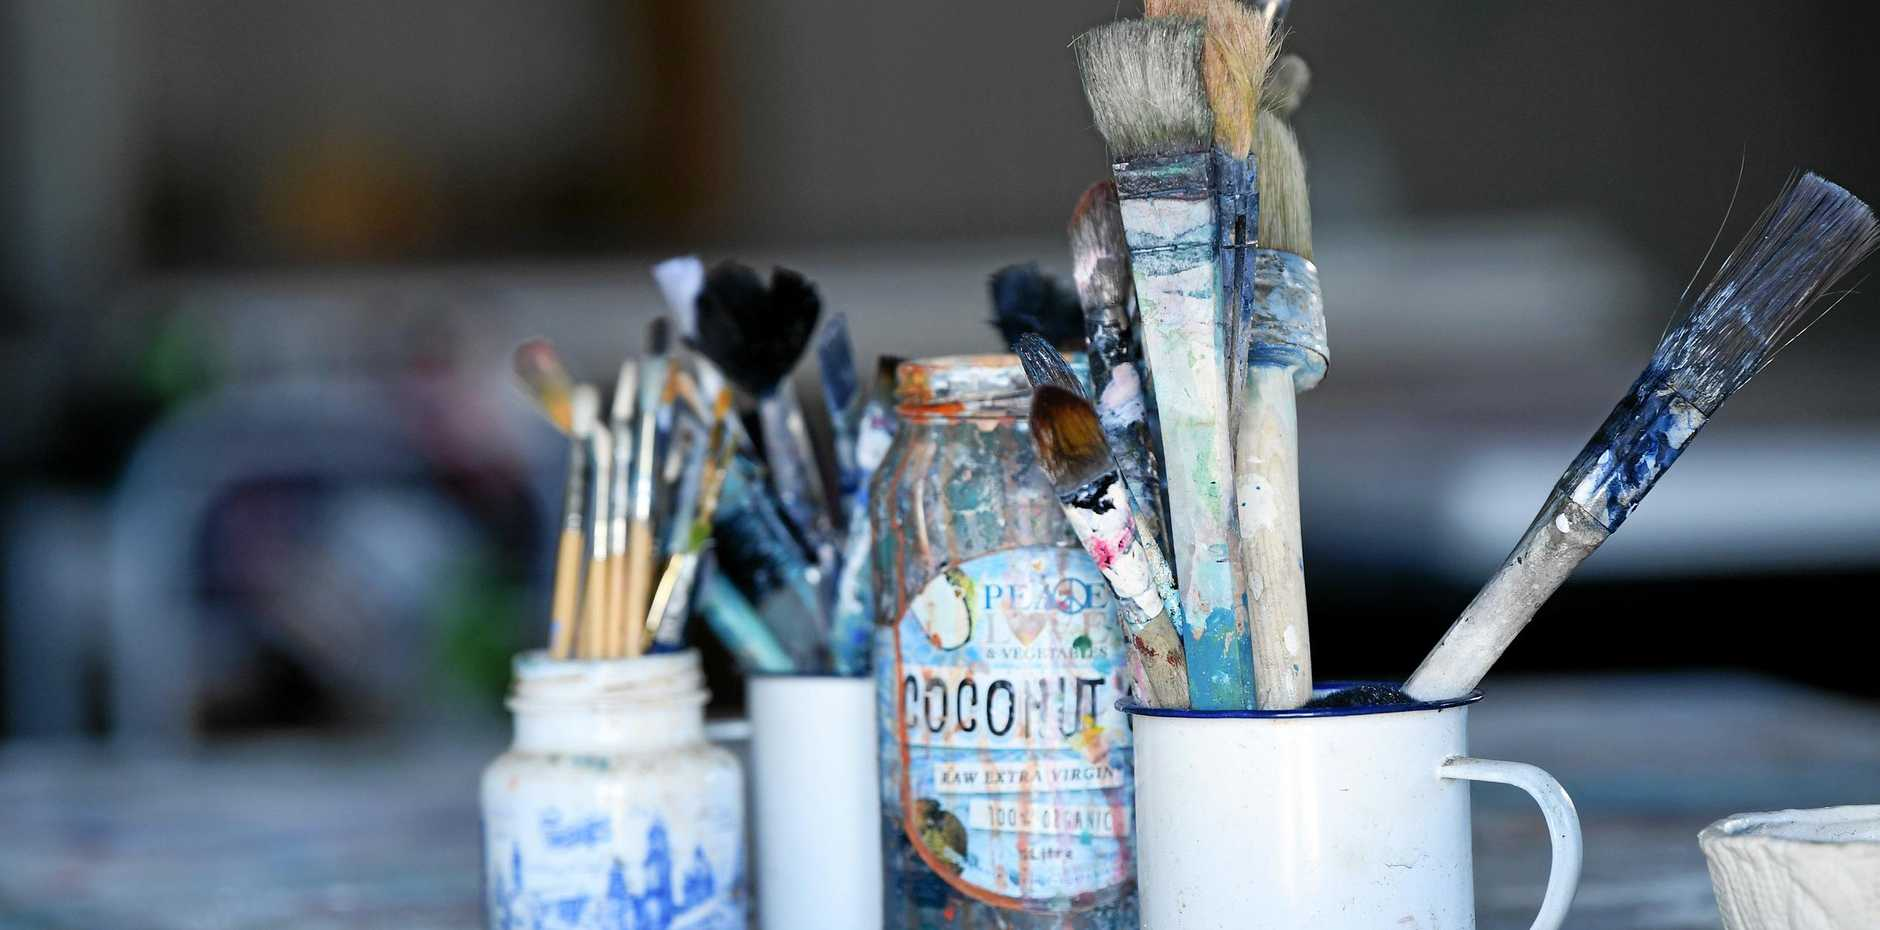 Young Queensland artists are encouraged to enter their art for the competition.